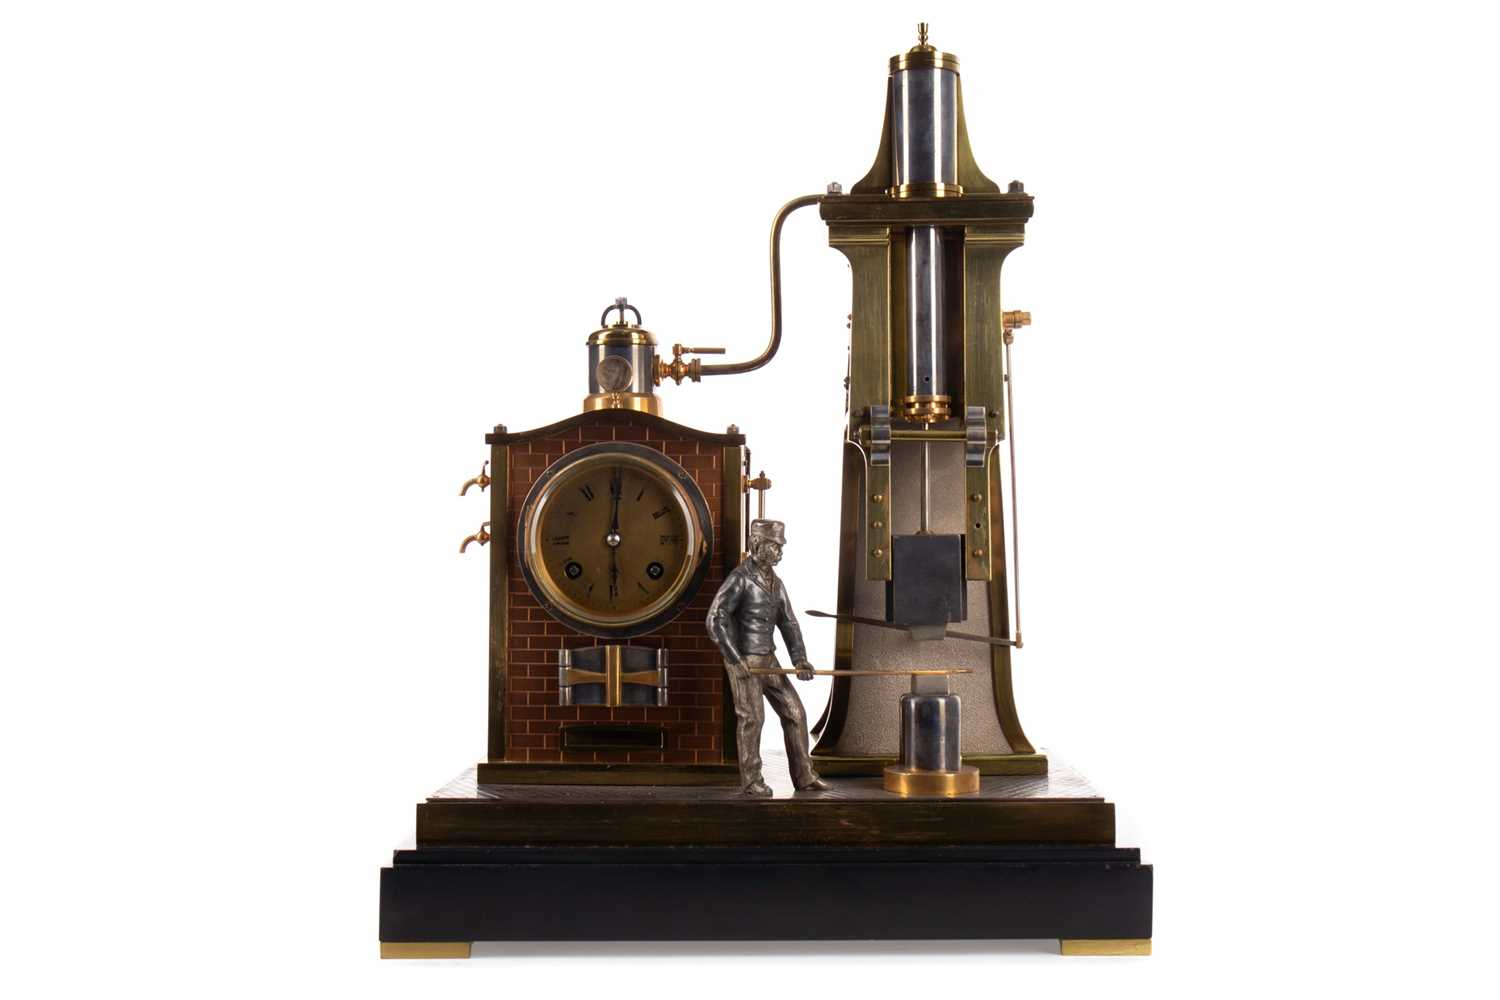 Lot 1198 - A RARE AND IMPRESSIVE LATE 19TH CENTURY FRENCH GILT AND PATINATED METAL 'FOUNDRYMAN' AUTOMATON CLOCK